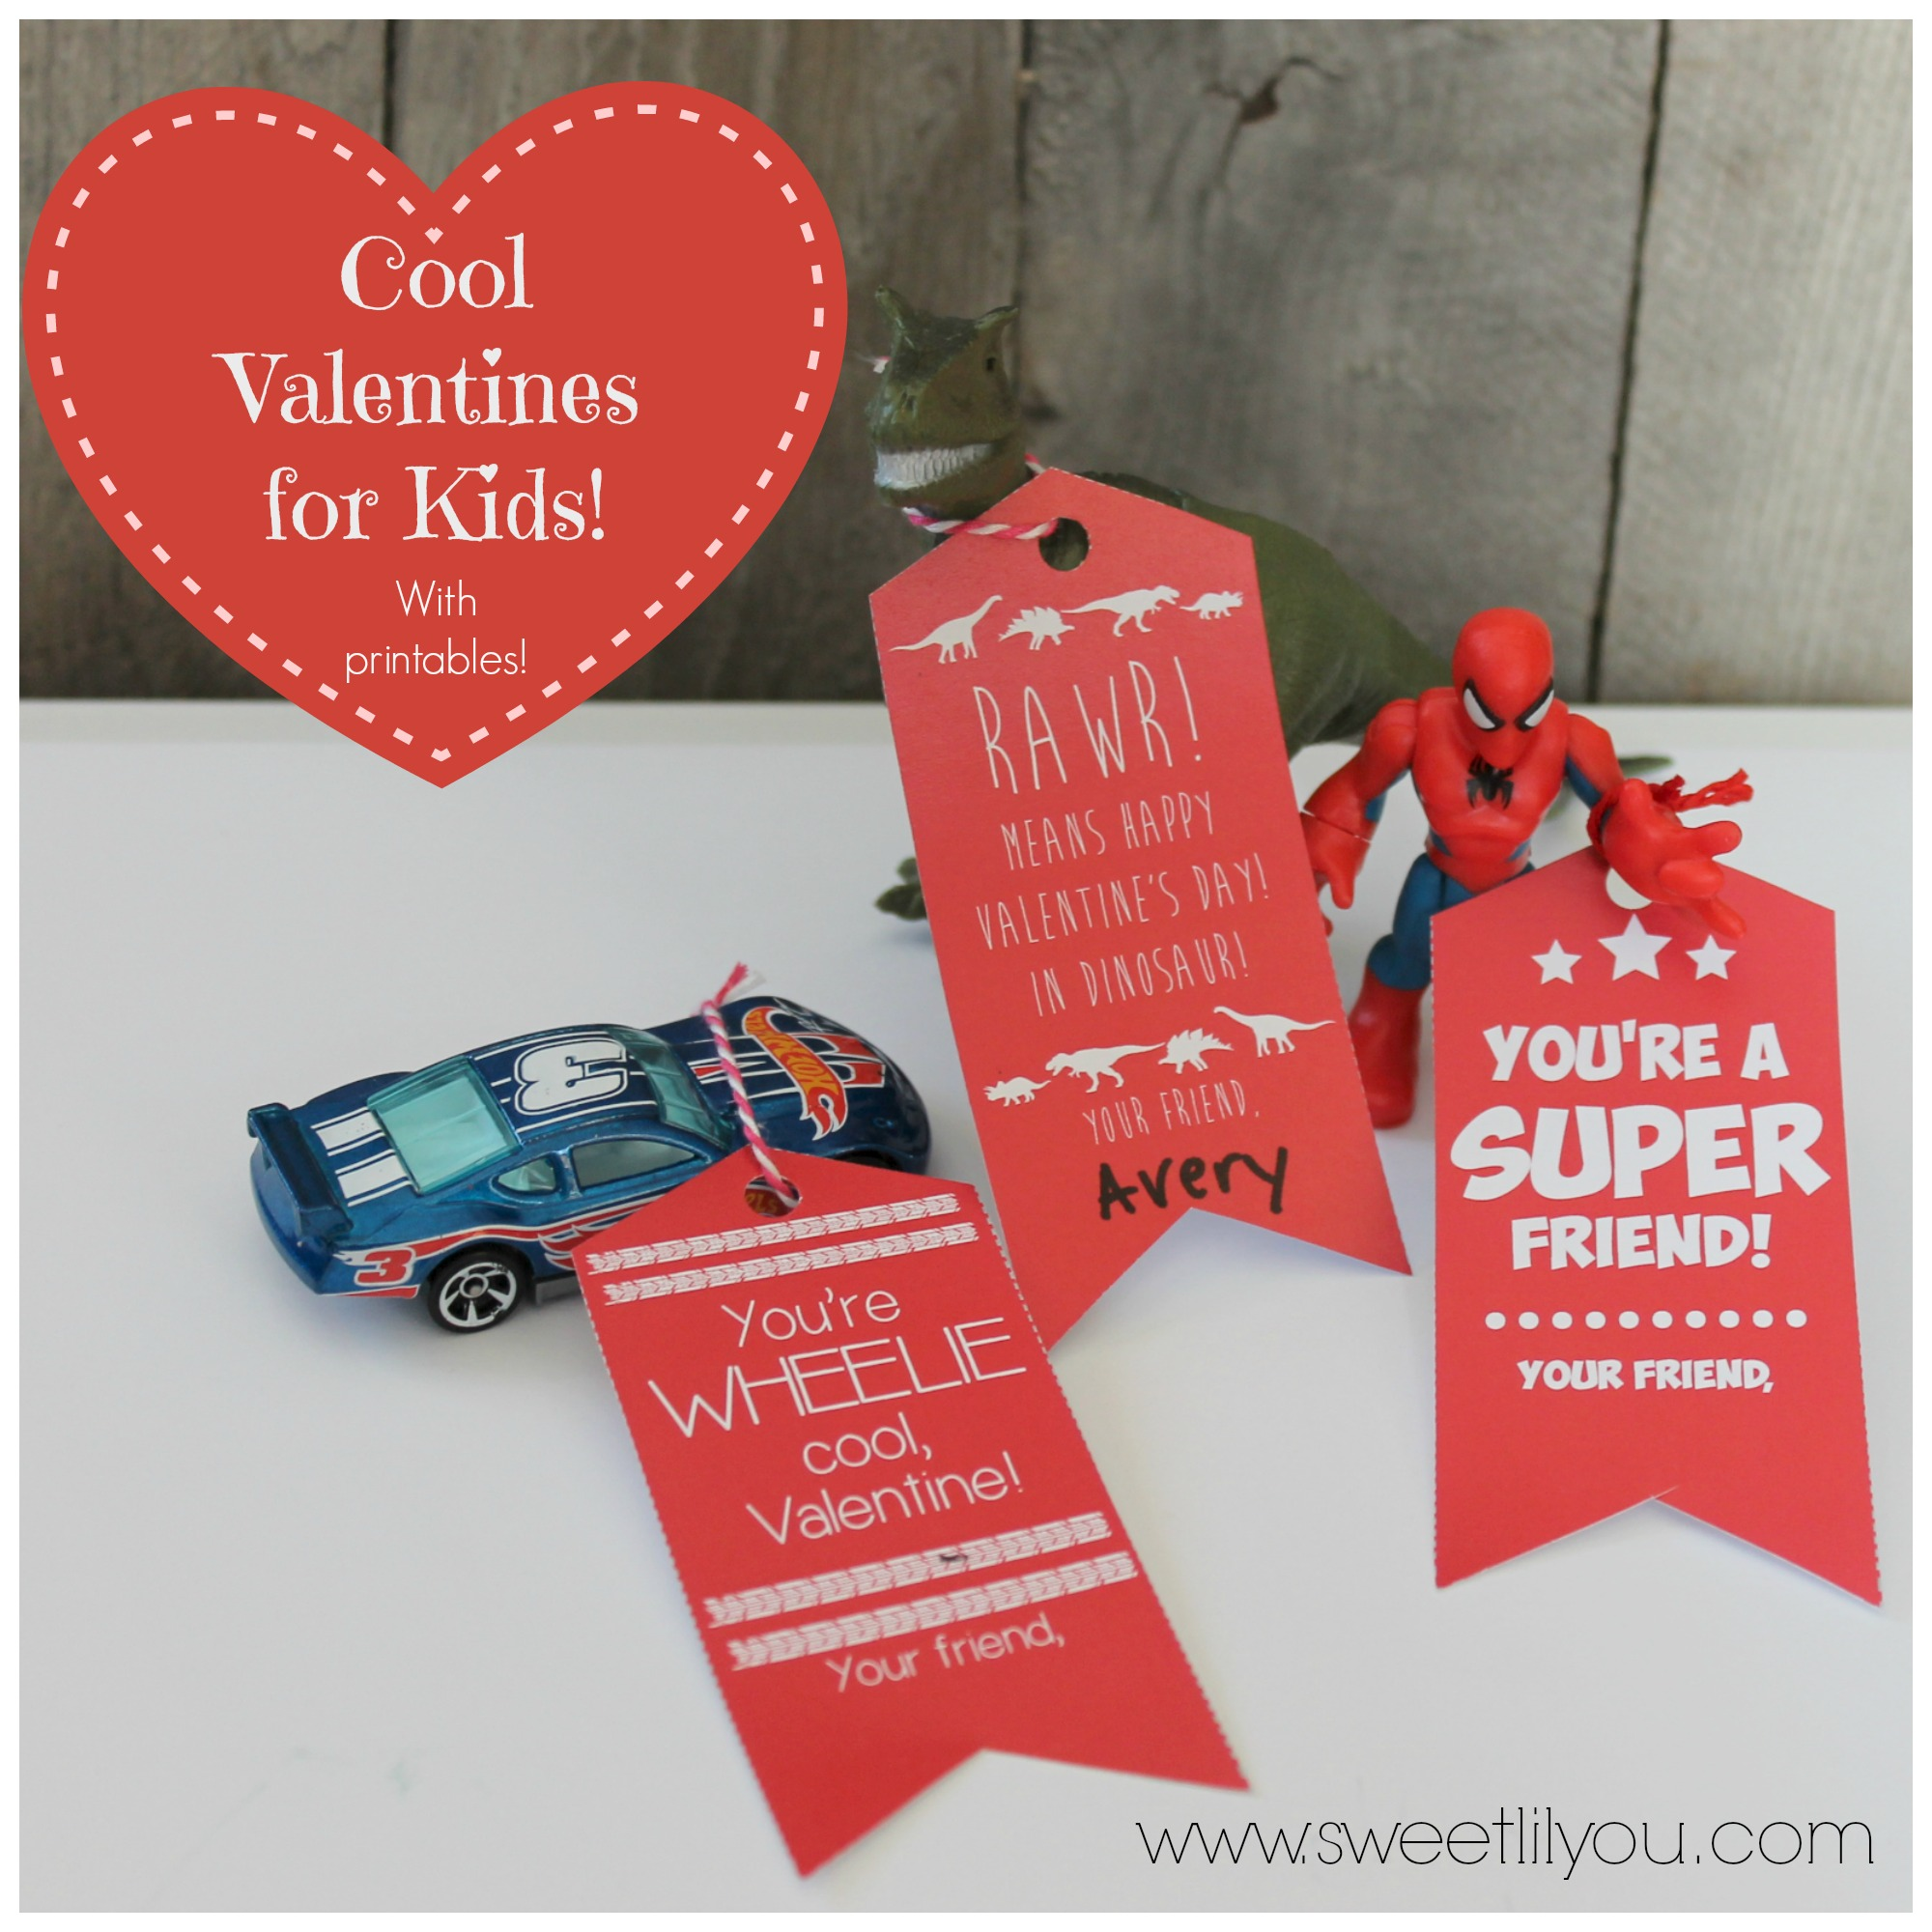 Cool Valentines for Kids! Dinosaurs Super heroes and Race cars! With Printable tags!